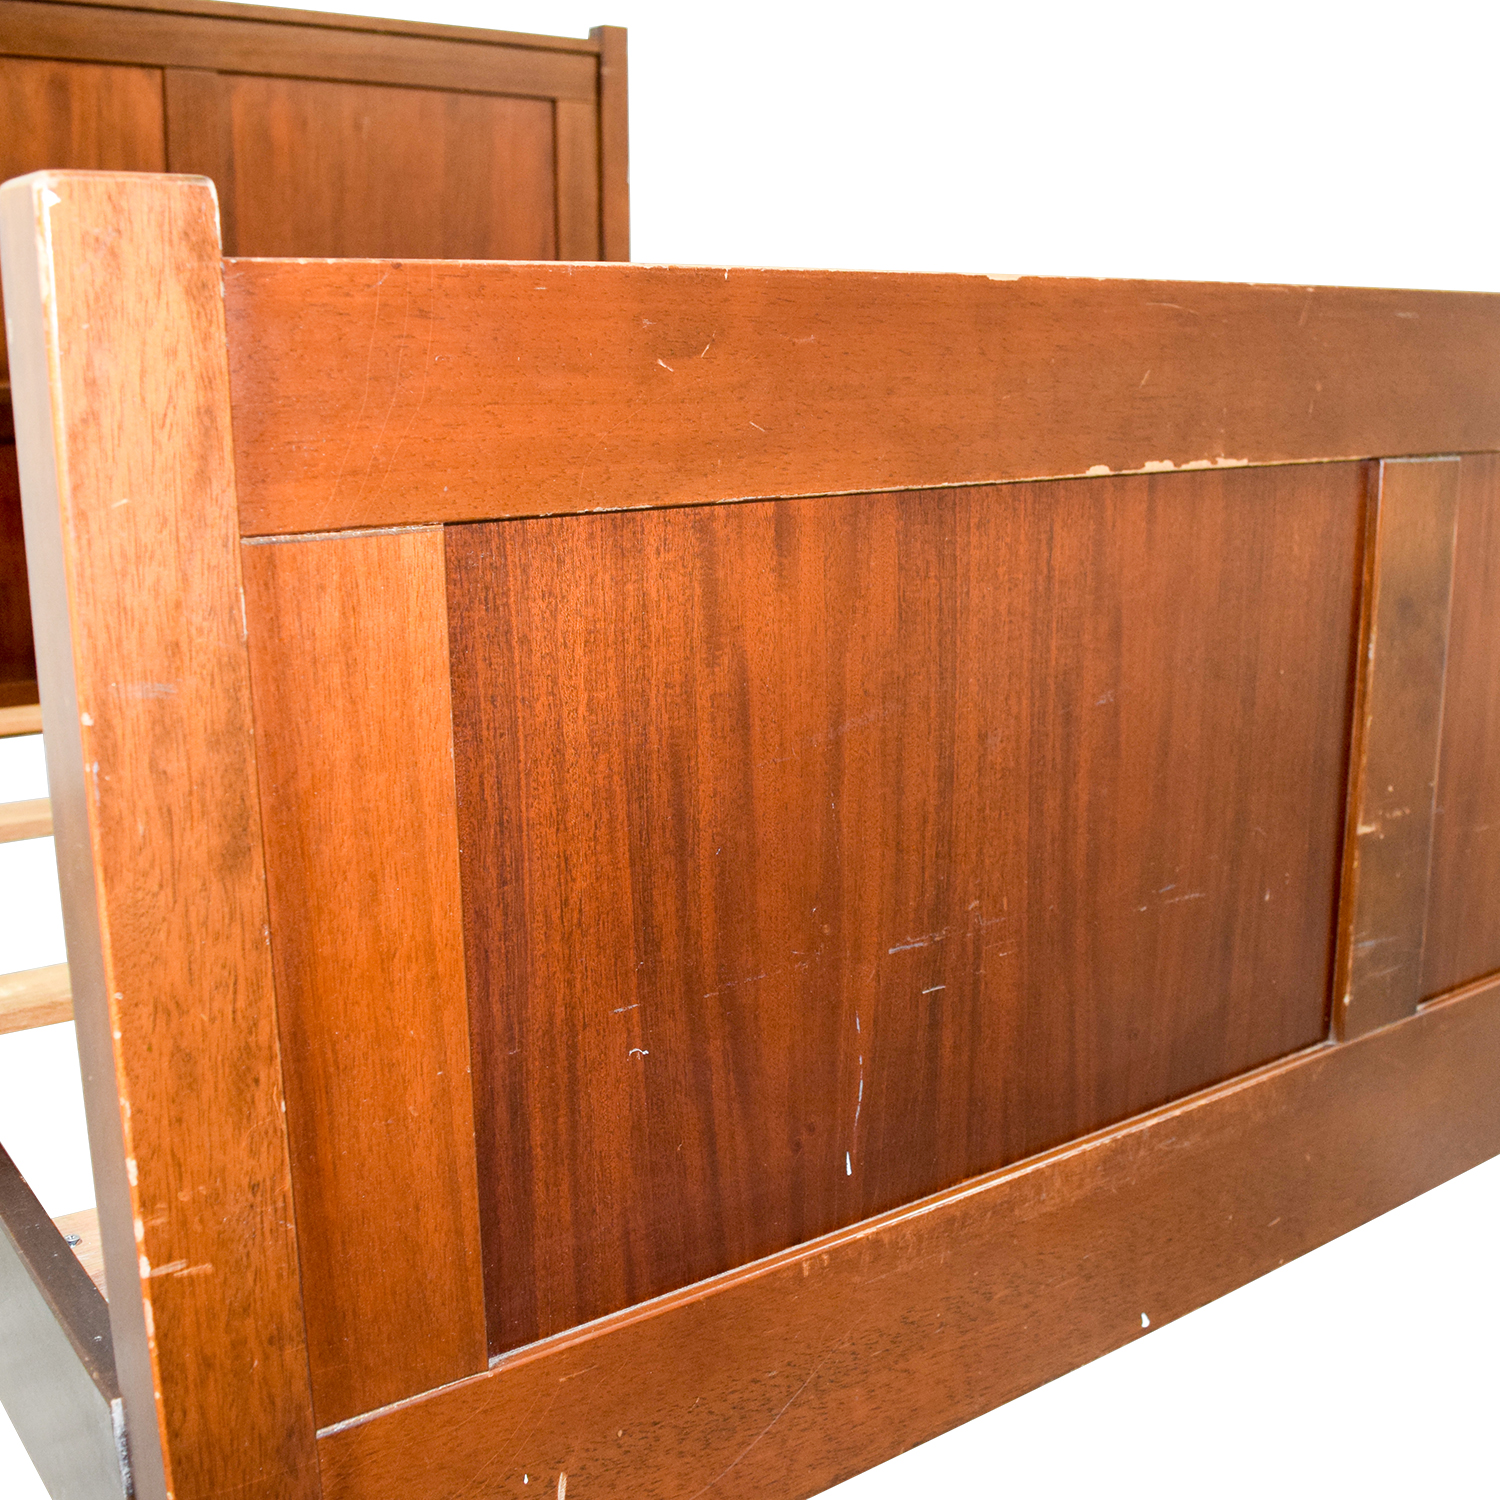 Pottery Barn Pottery Barn Wood Full Bed Frame on sale